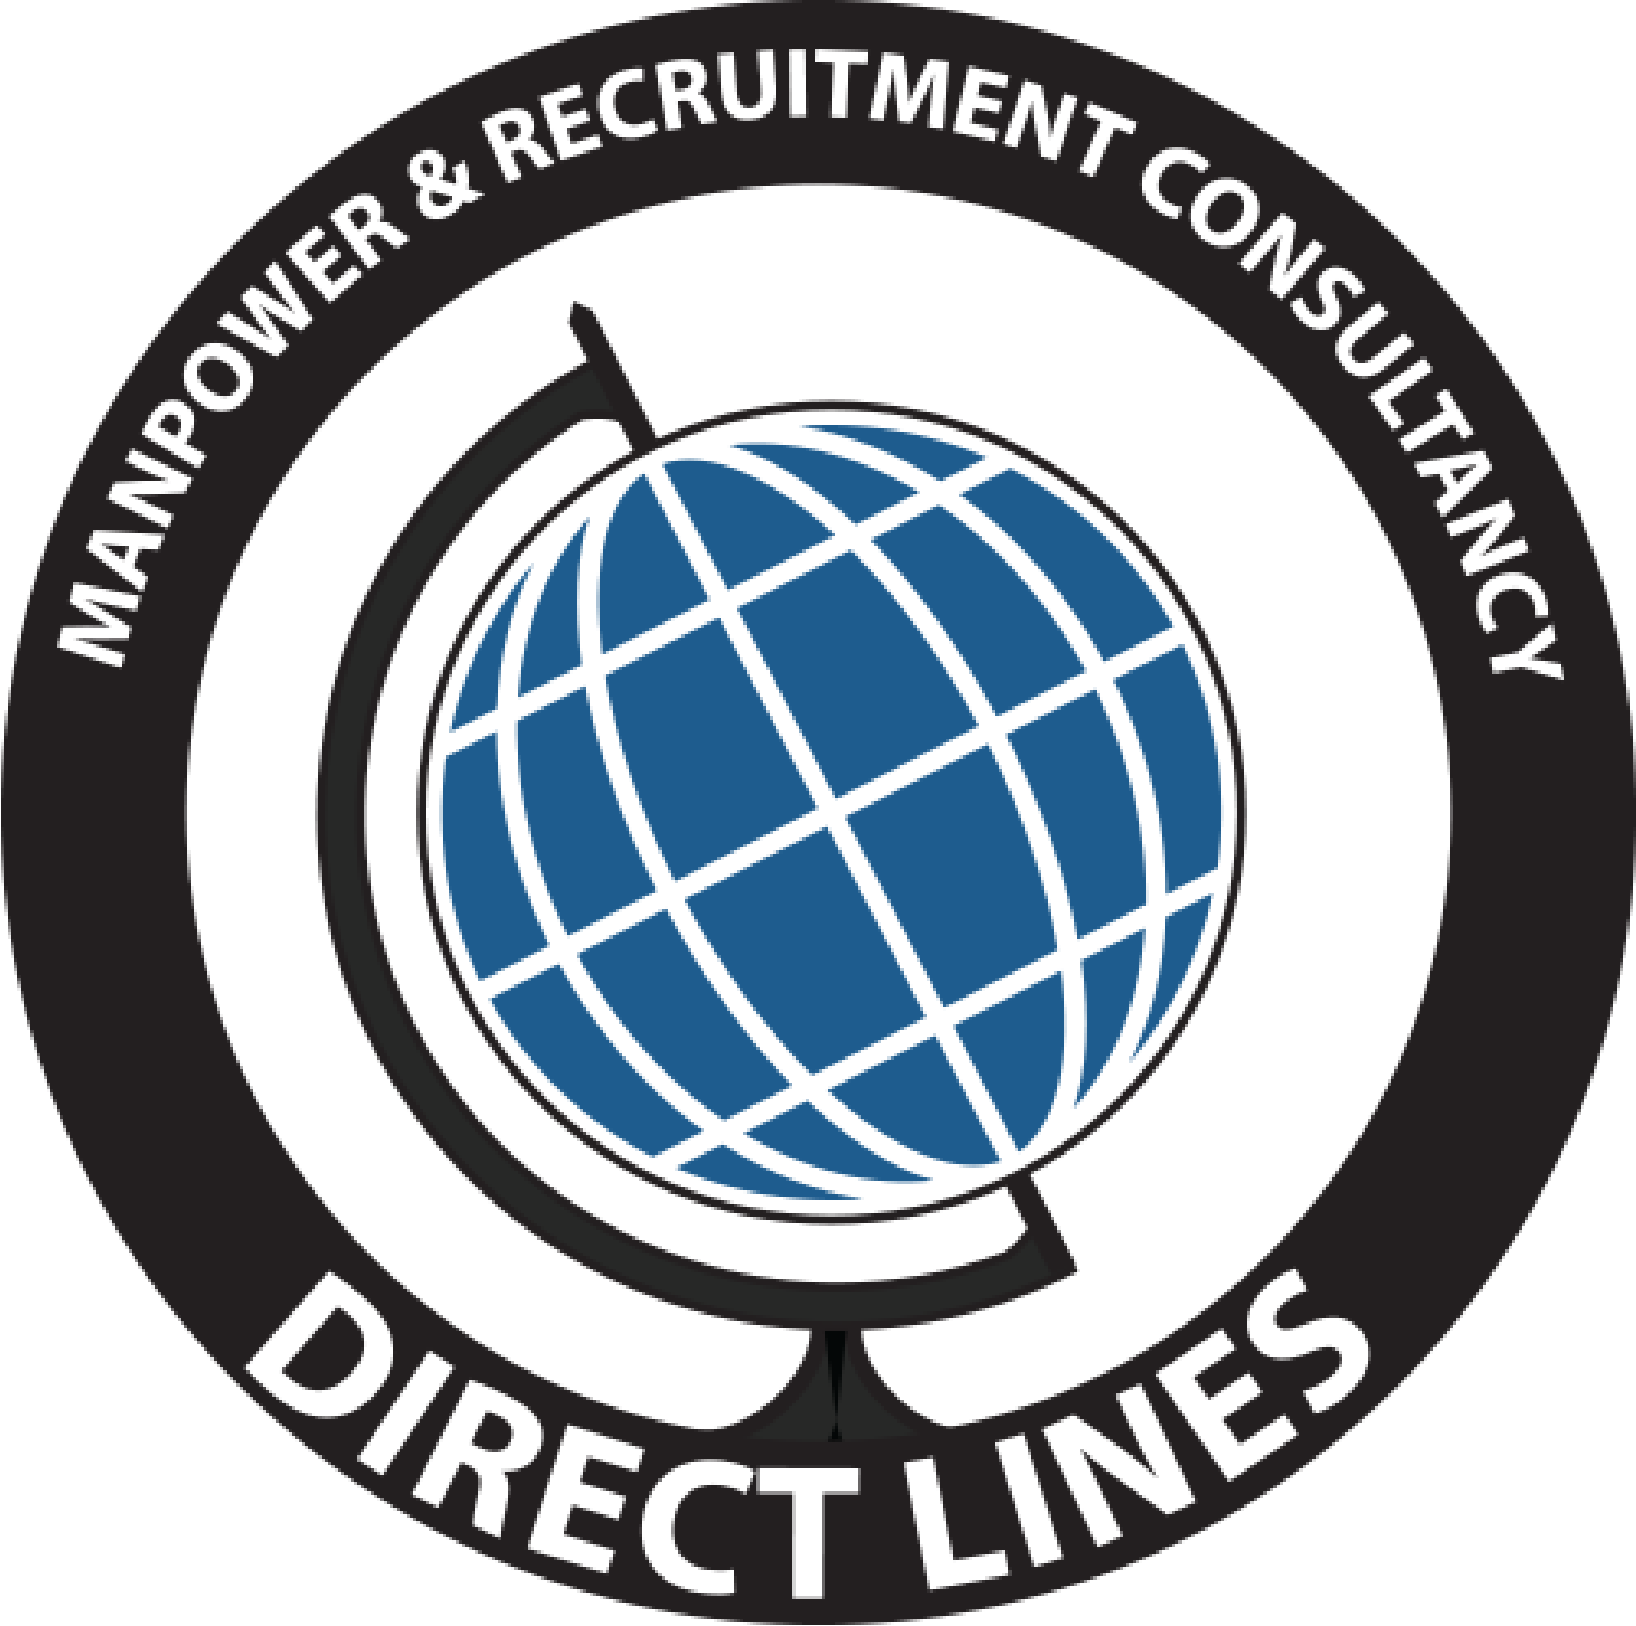 Manpower & Recruitment Consultancy